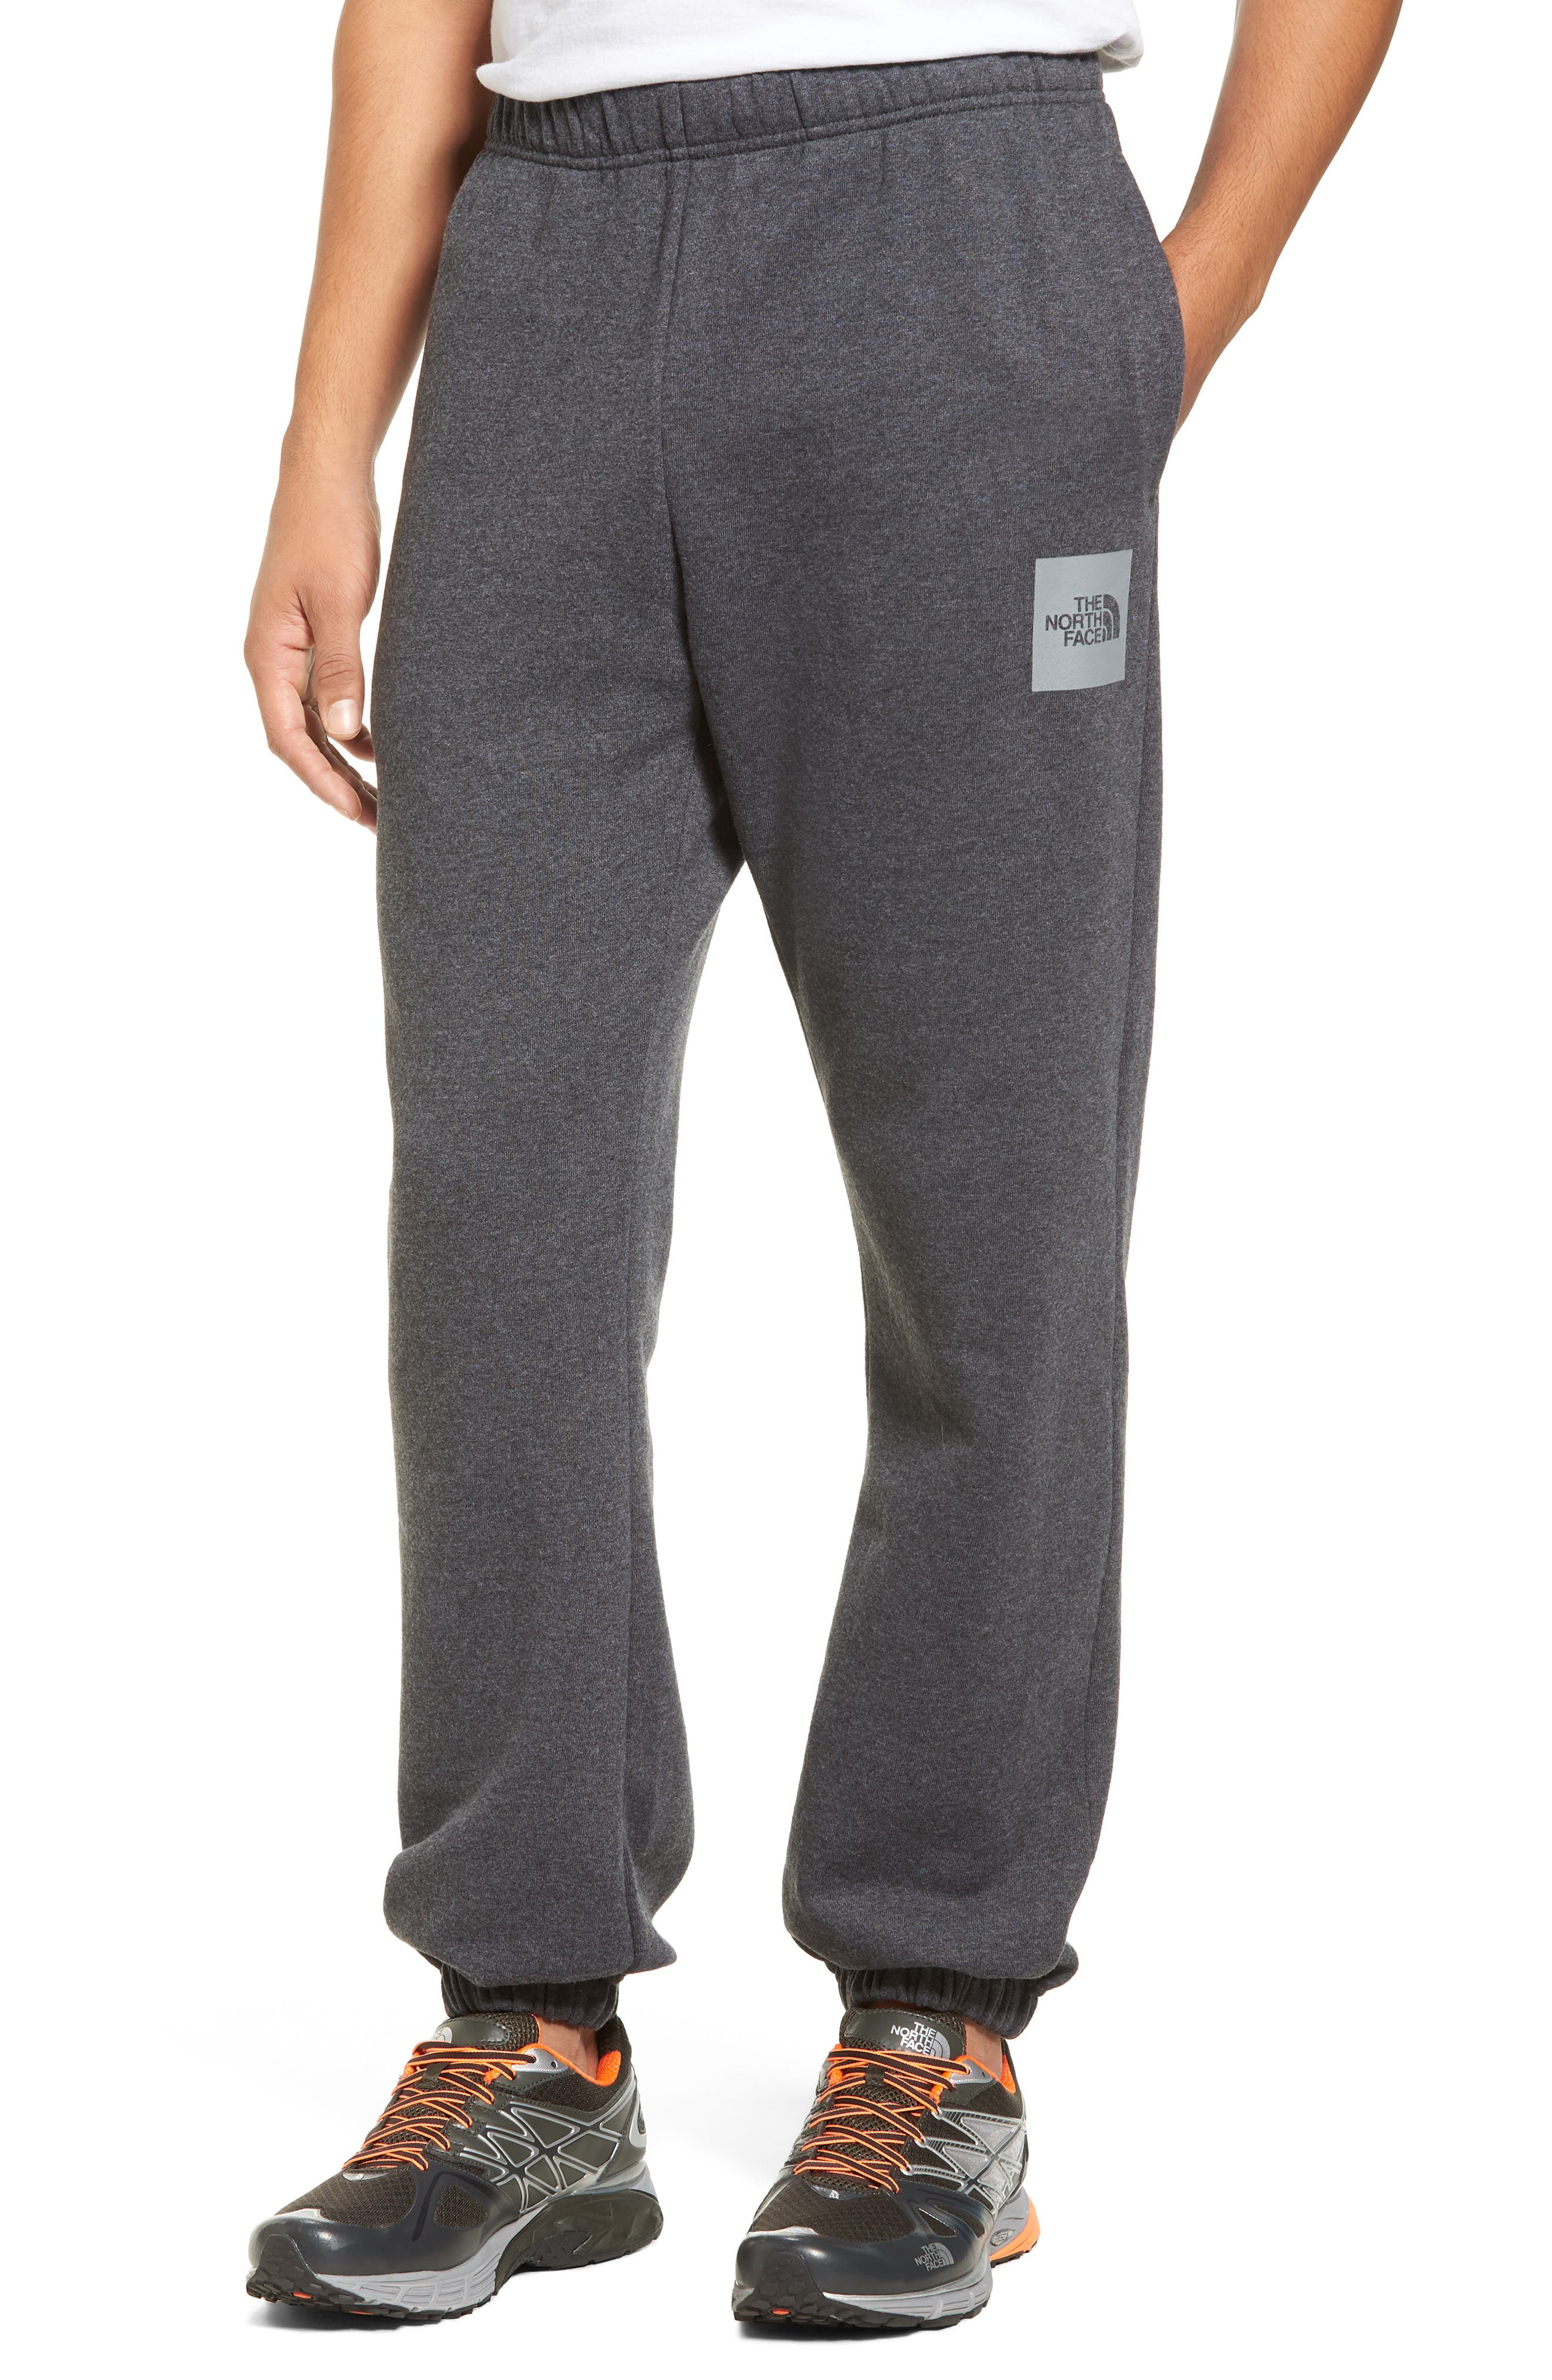 Main Image - The North Face Reflective Never Stop Pants